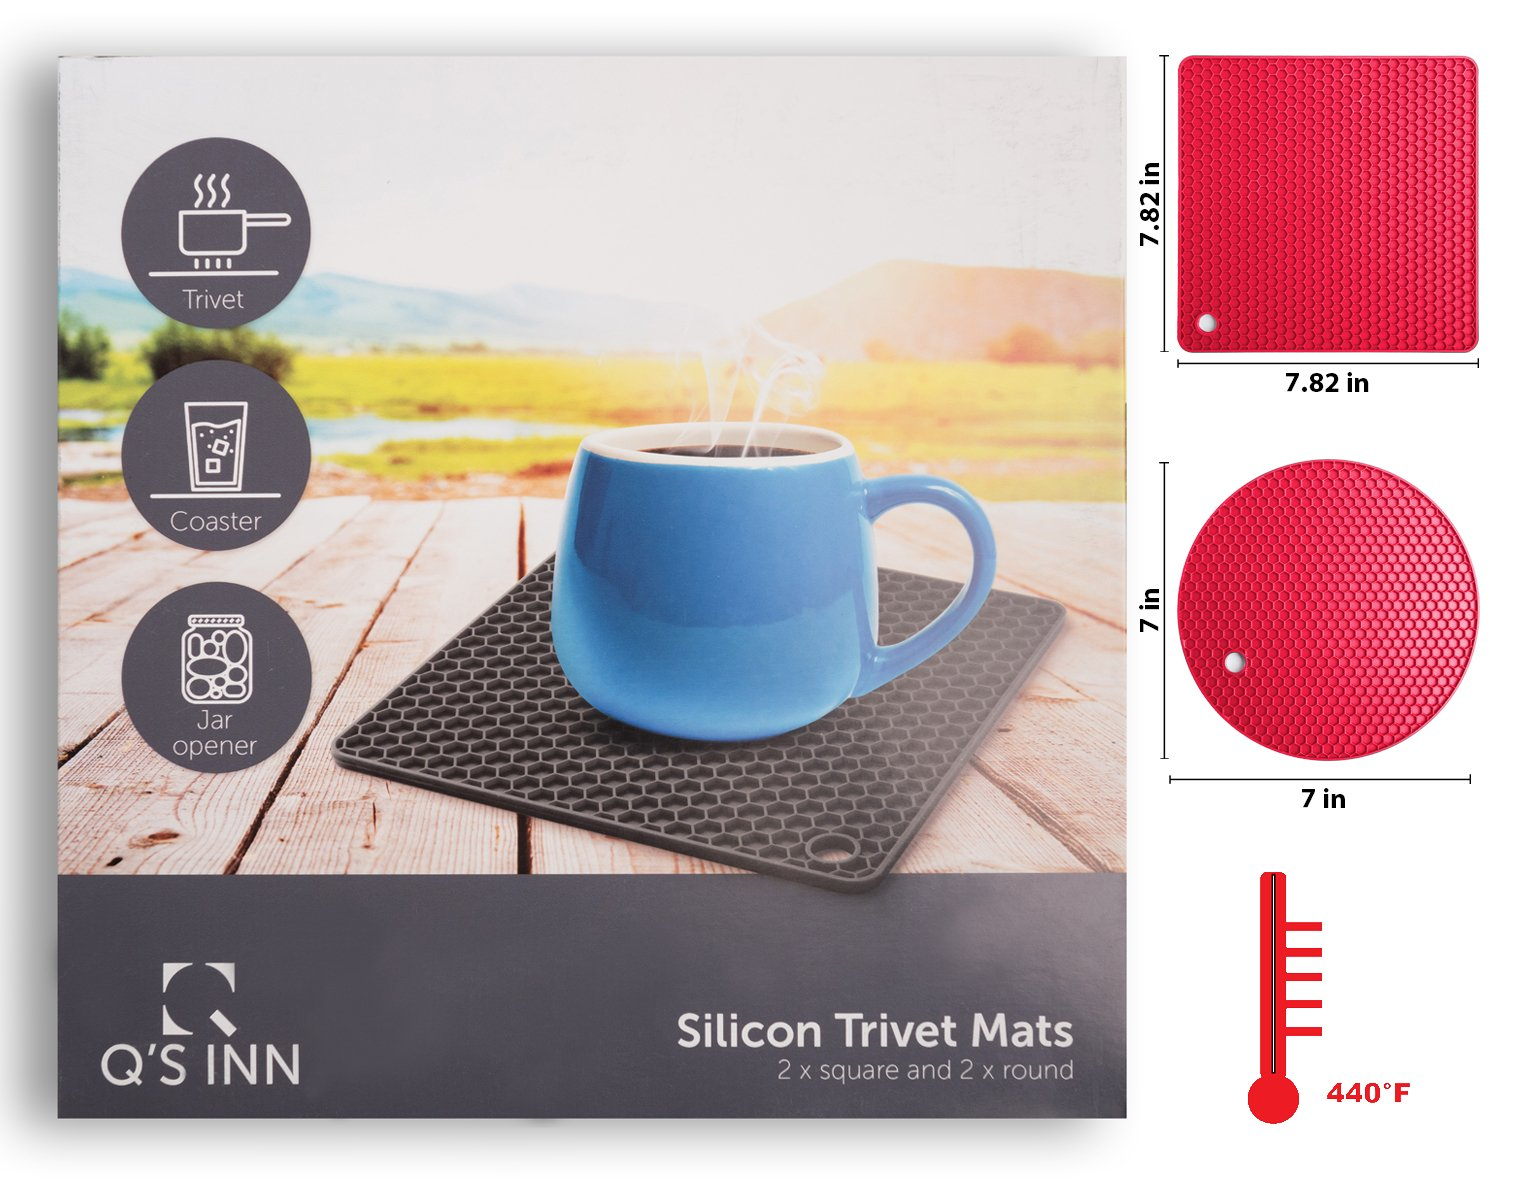 Q's INN Silicone Trivet Mats | Hot Pot Holders | Drying Mat. Our 7 in 1 Multi-Purpose Kitchen Tool is Heat Resistant to 440°F, Non-slip,durable, flexible easy to wash and dry and Contains 4 pcs. by Q's INN (Image #7)